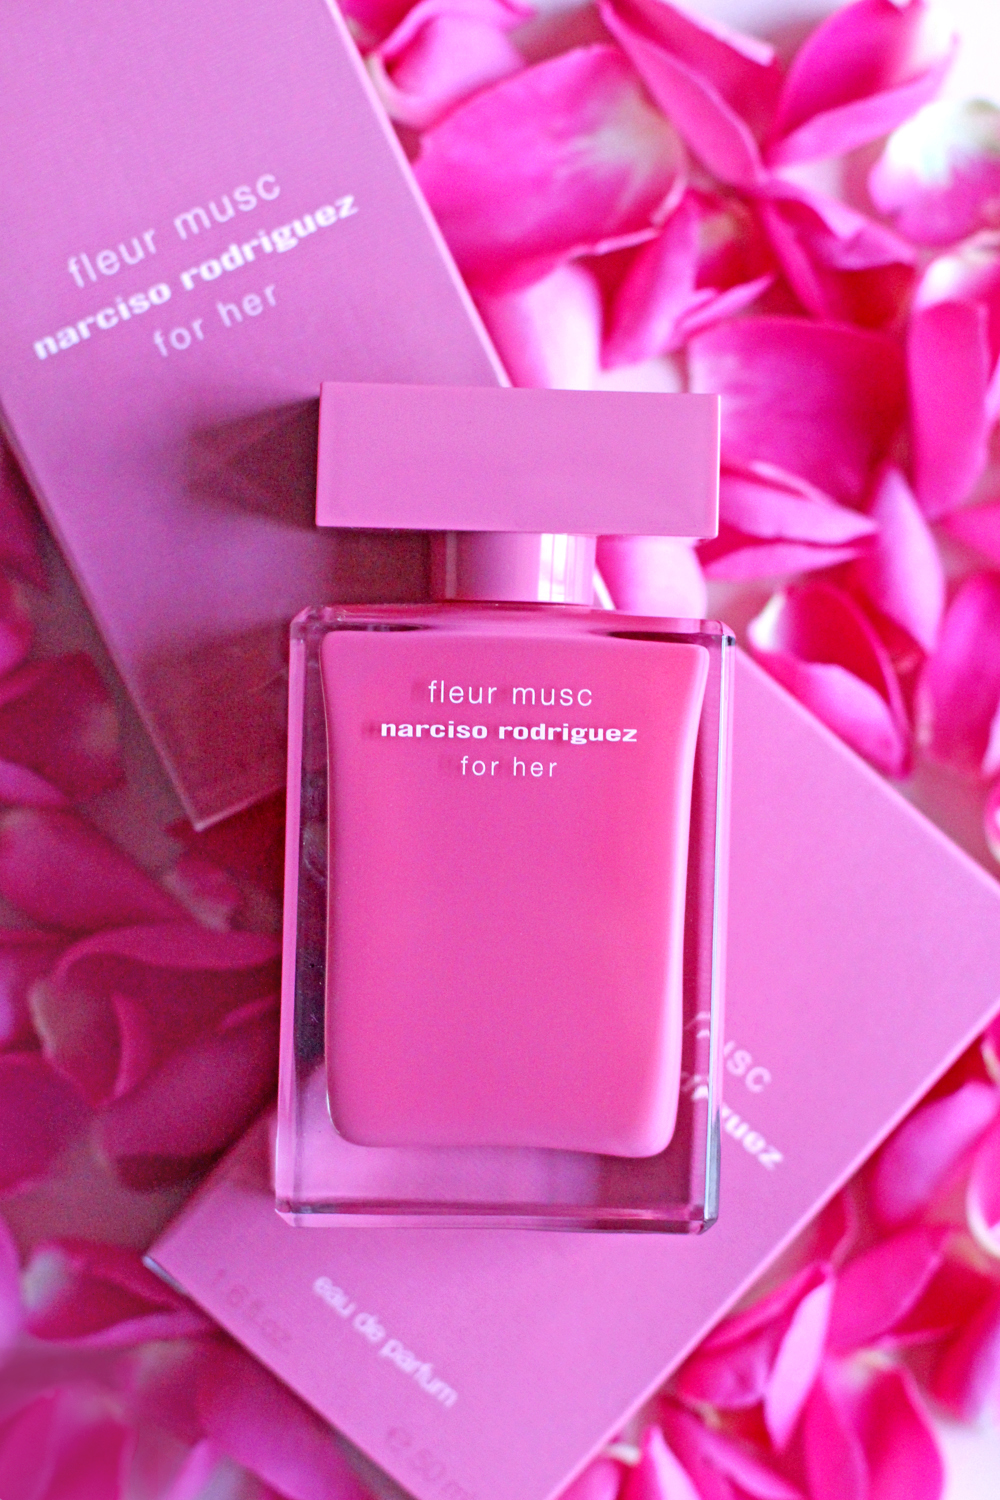 Narciso Rodriguez Fleur Musc eau de parfum perfume - UK beauty blog